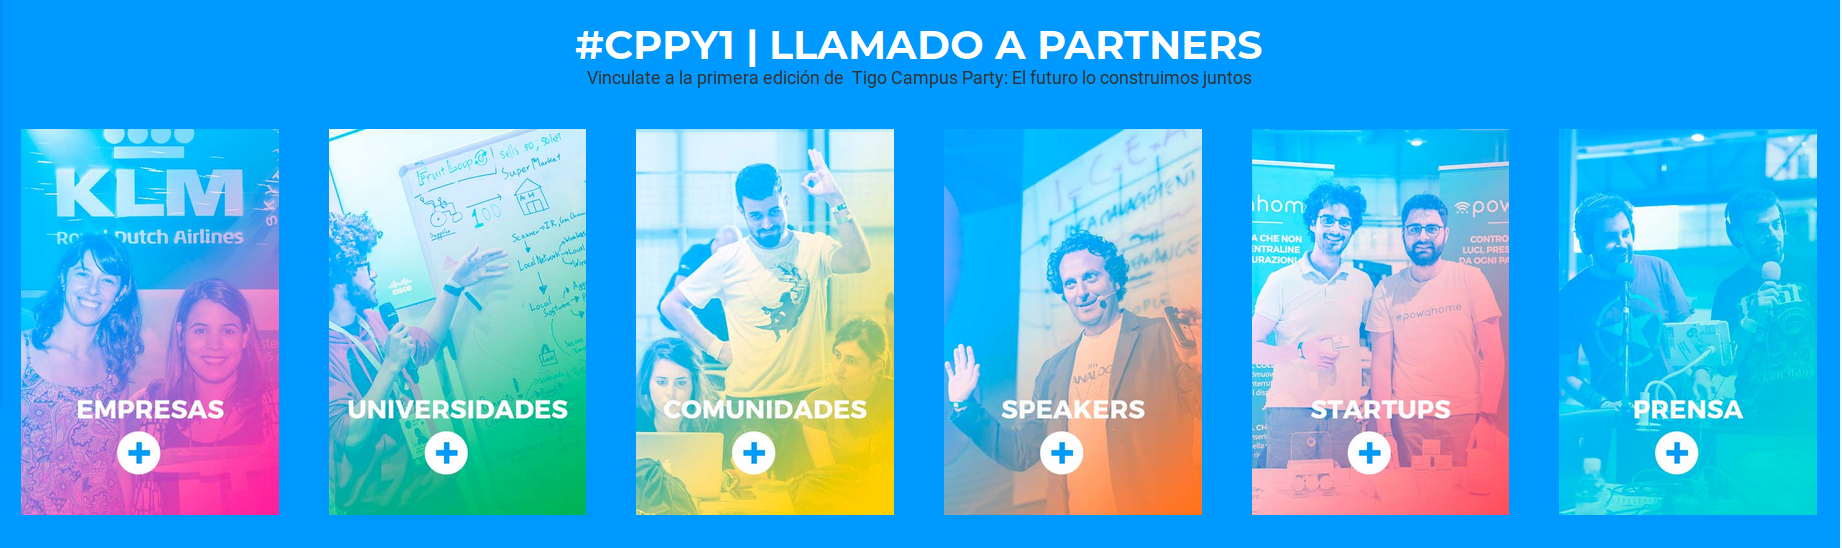 Partners Campus Party Paraguay